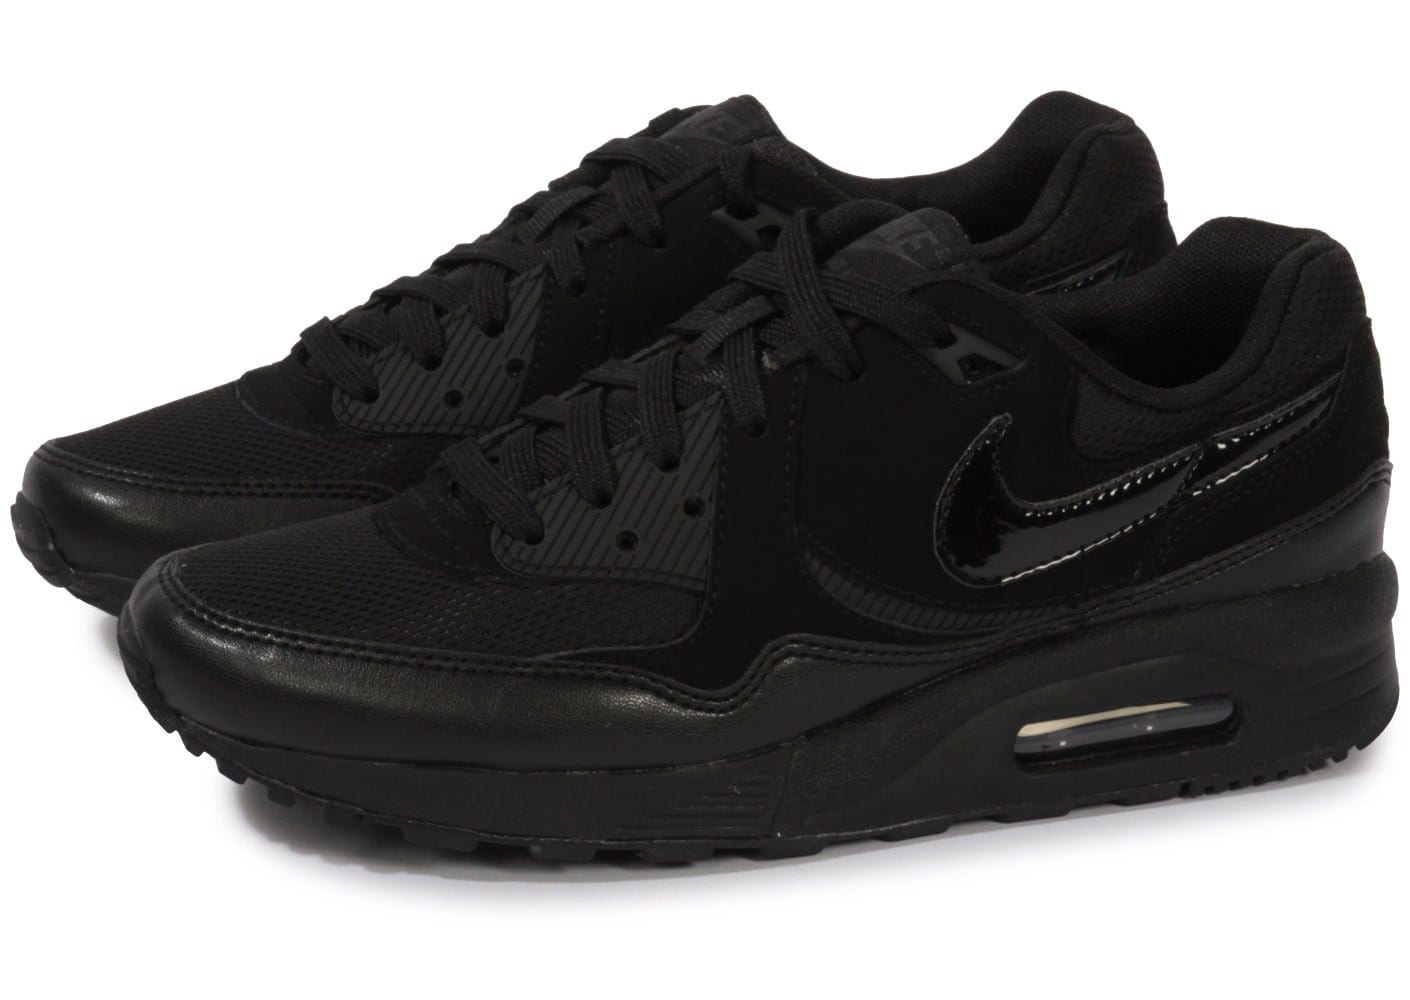 Nike Air Max Light Noire Chaussures Chaussures Chausport